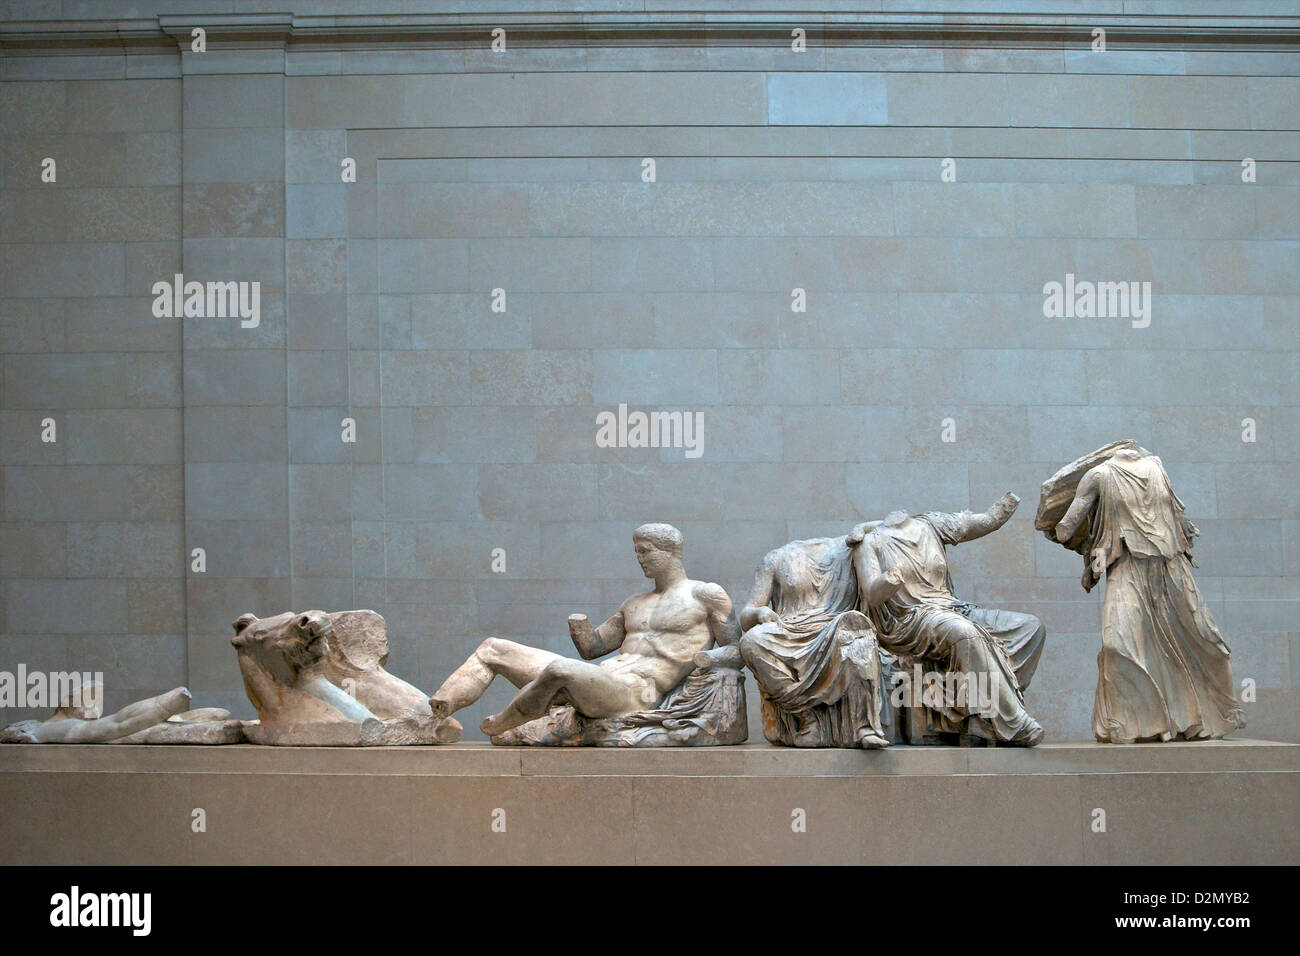 Sculptures from the East Pediment, Parthenon, British Museum, London, England, UK, GB, British Isles - Stock Image